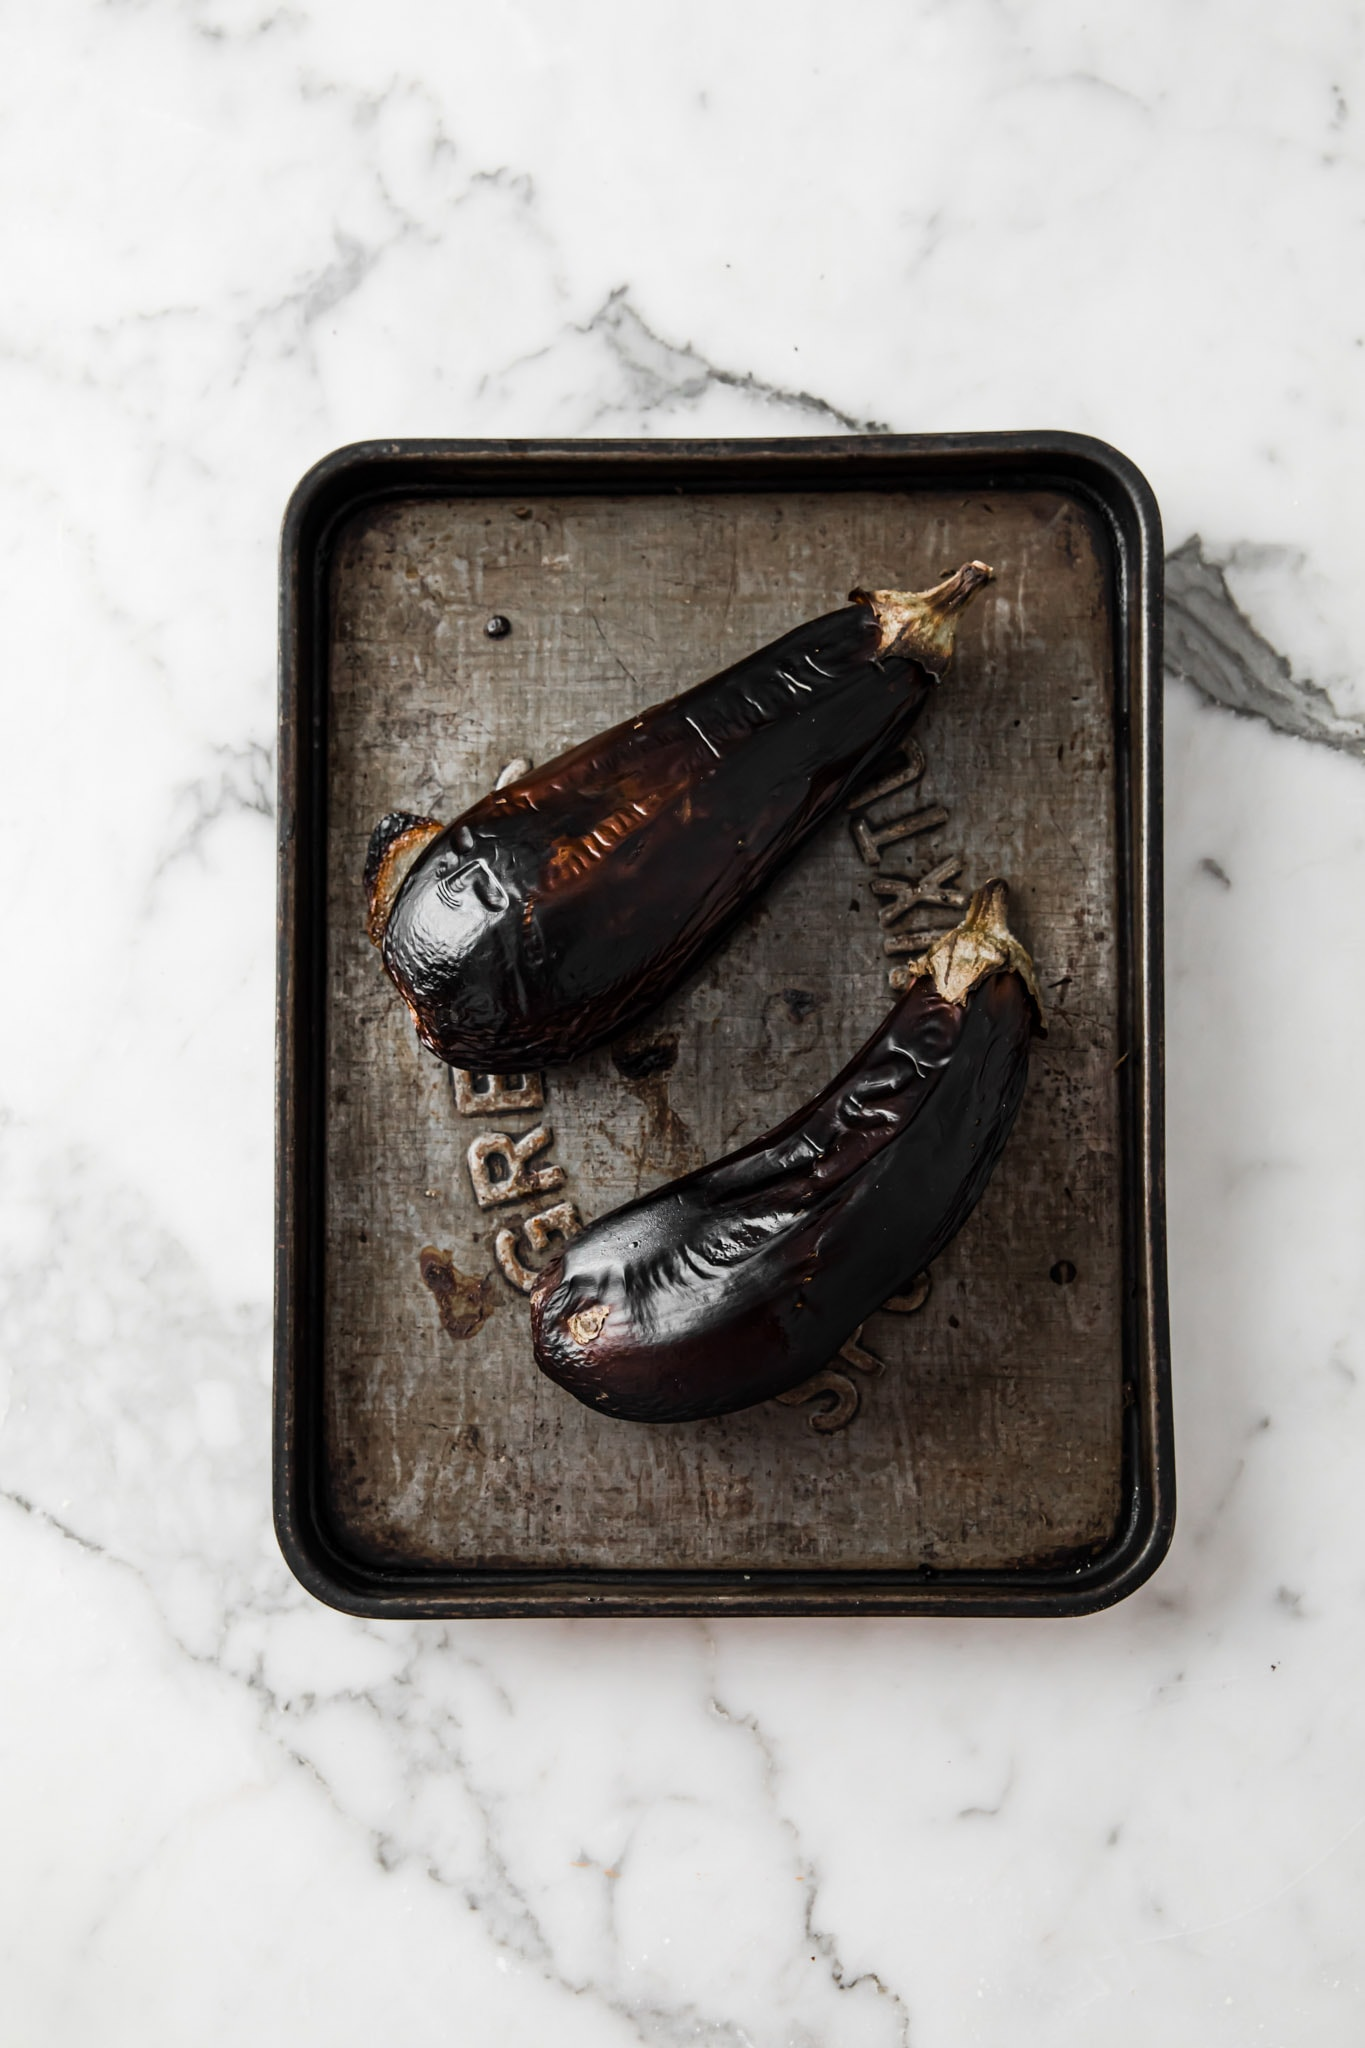 Oven Roasted (broiled) eggplants with charred skin on a sheet pan right